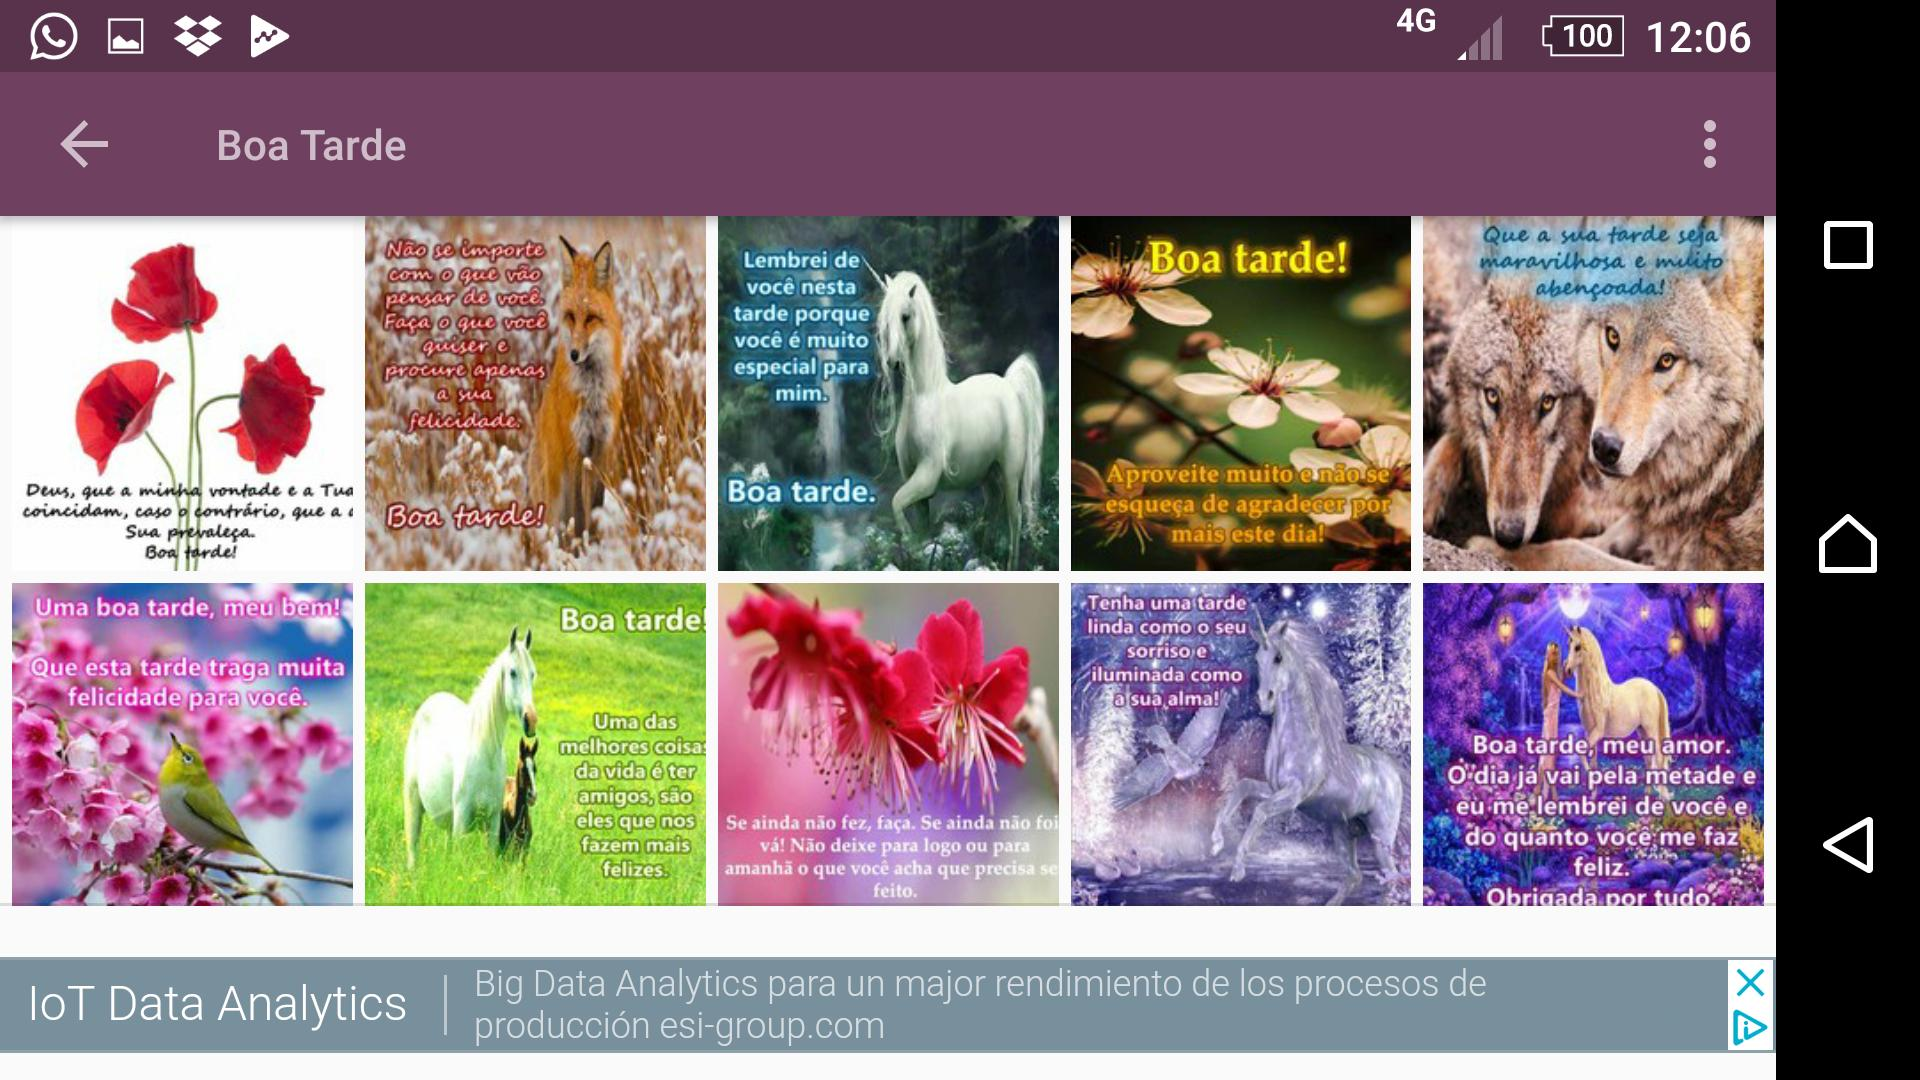 Boa Tarde Imagens E Frases For Android Apk Download